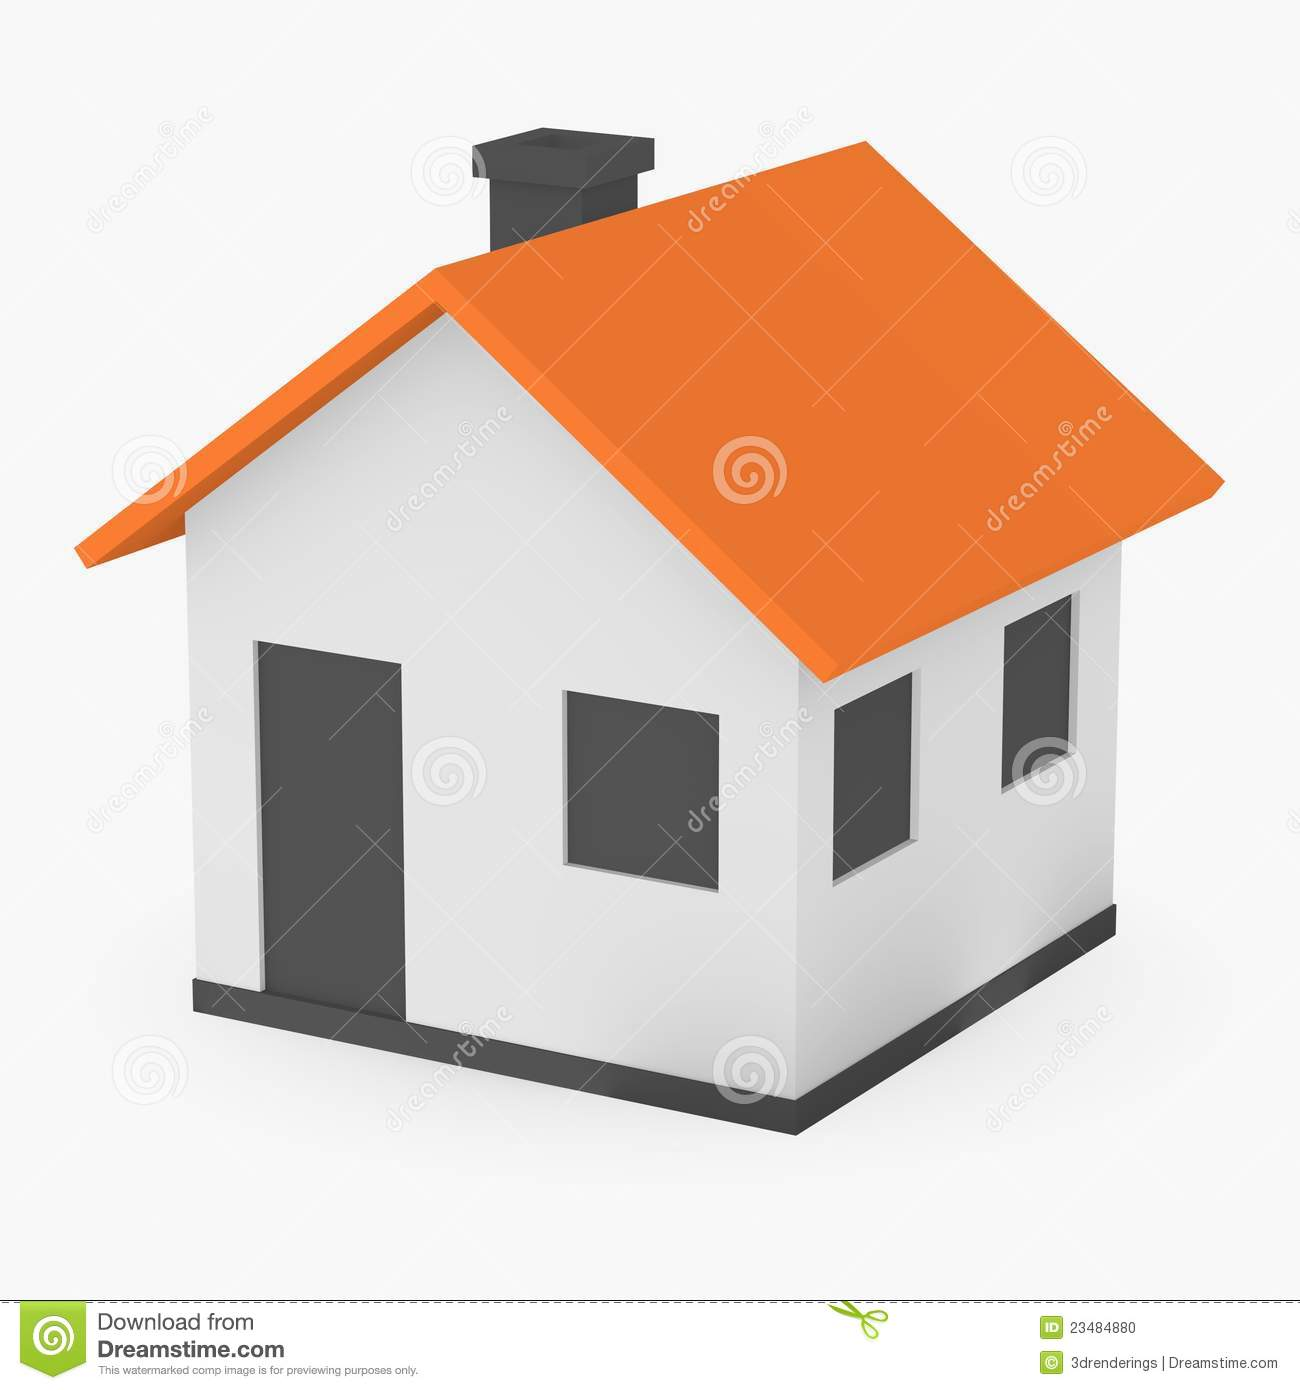 Maison de dessin anim illustration stock image du for Dessin de maison en 3d